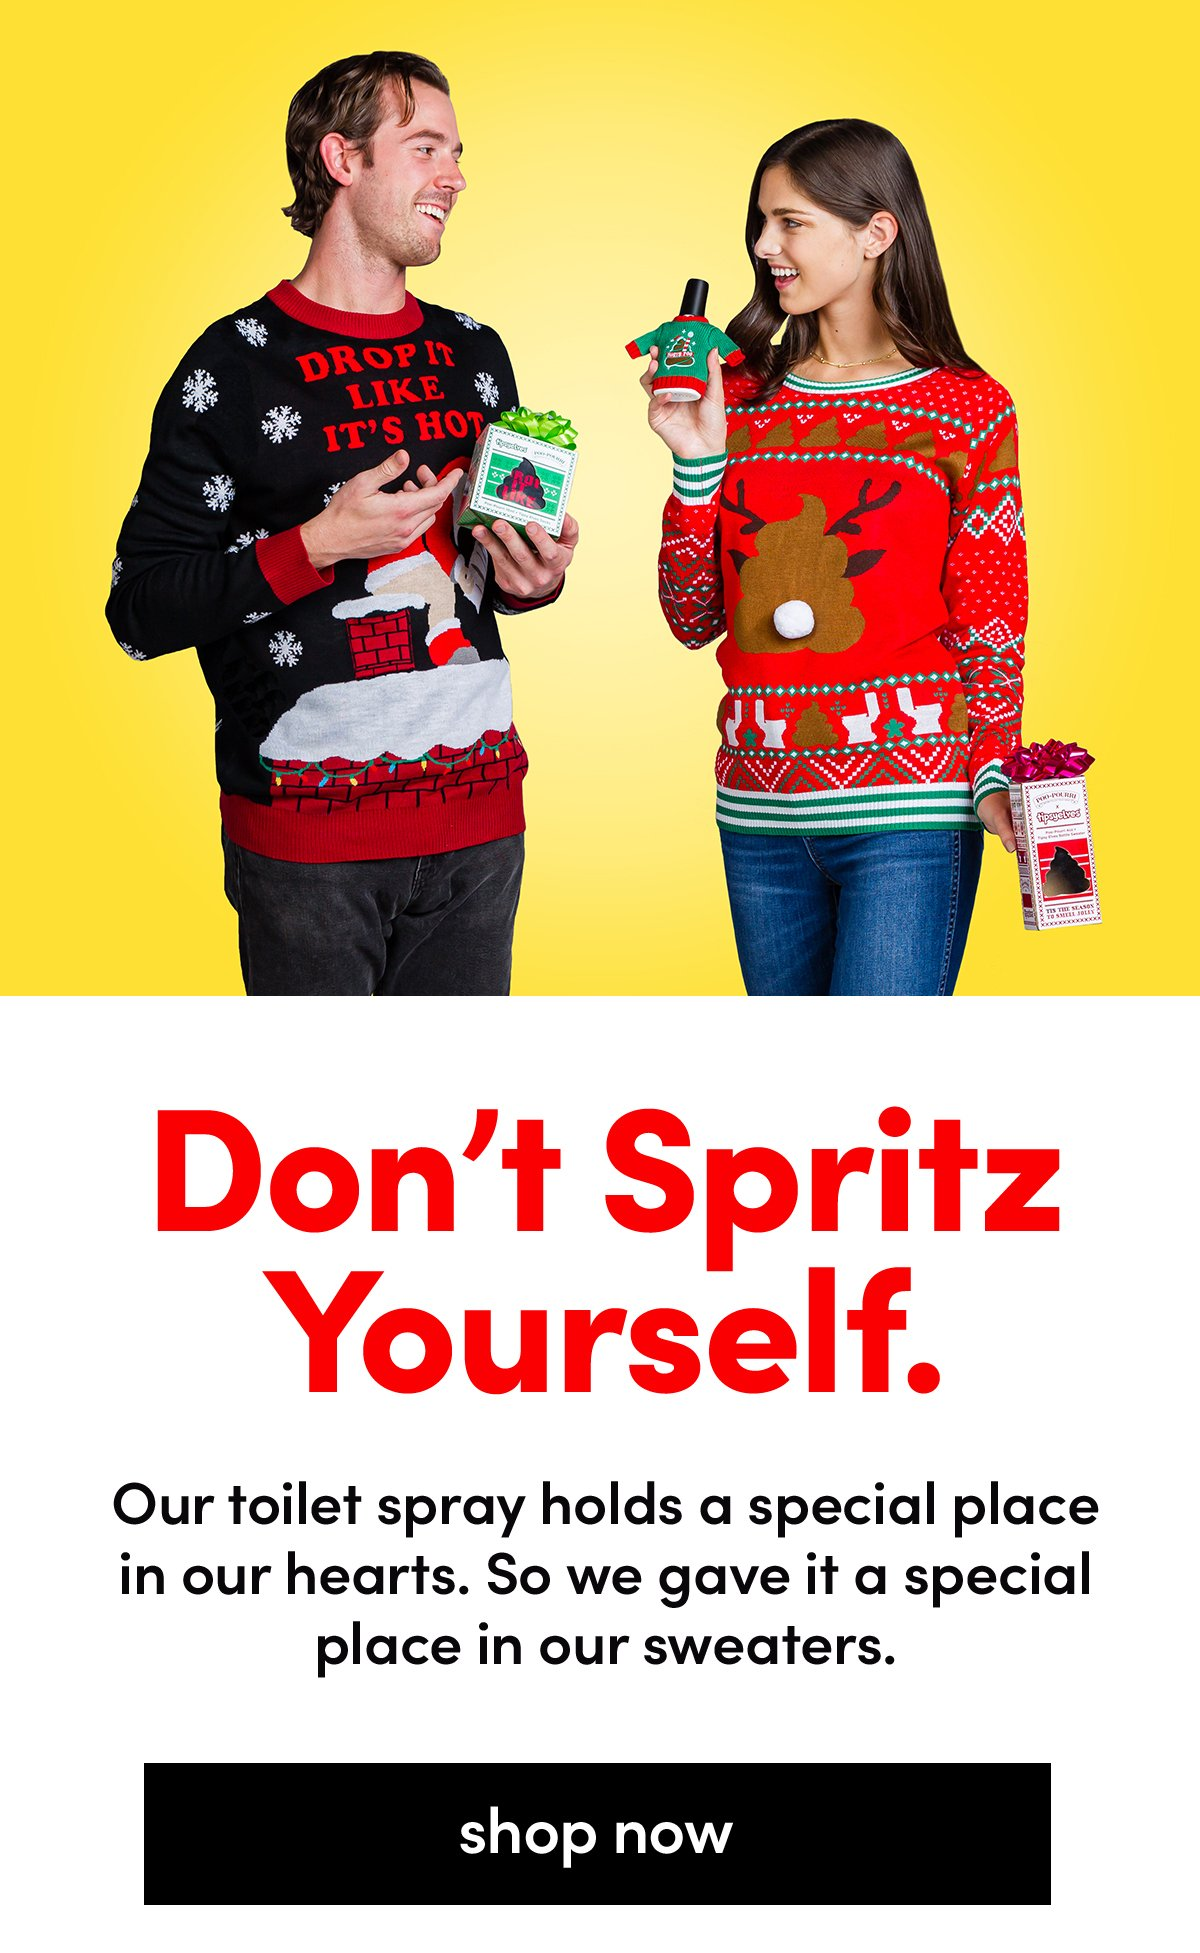 Don't Spitz Yourself. Our toilet spray holds a special place in our hearts. So we gave it a special place in our sweaters. | Shop Now